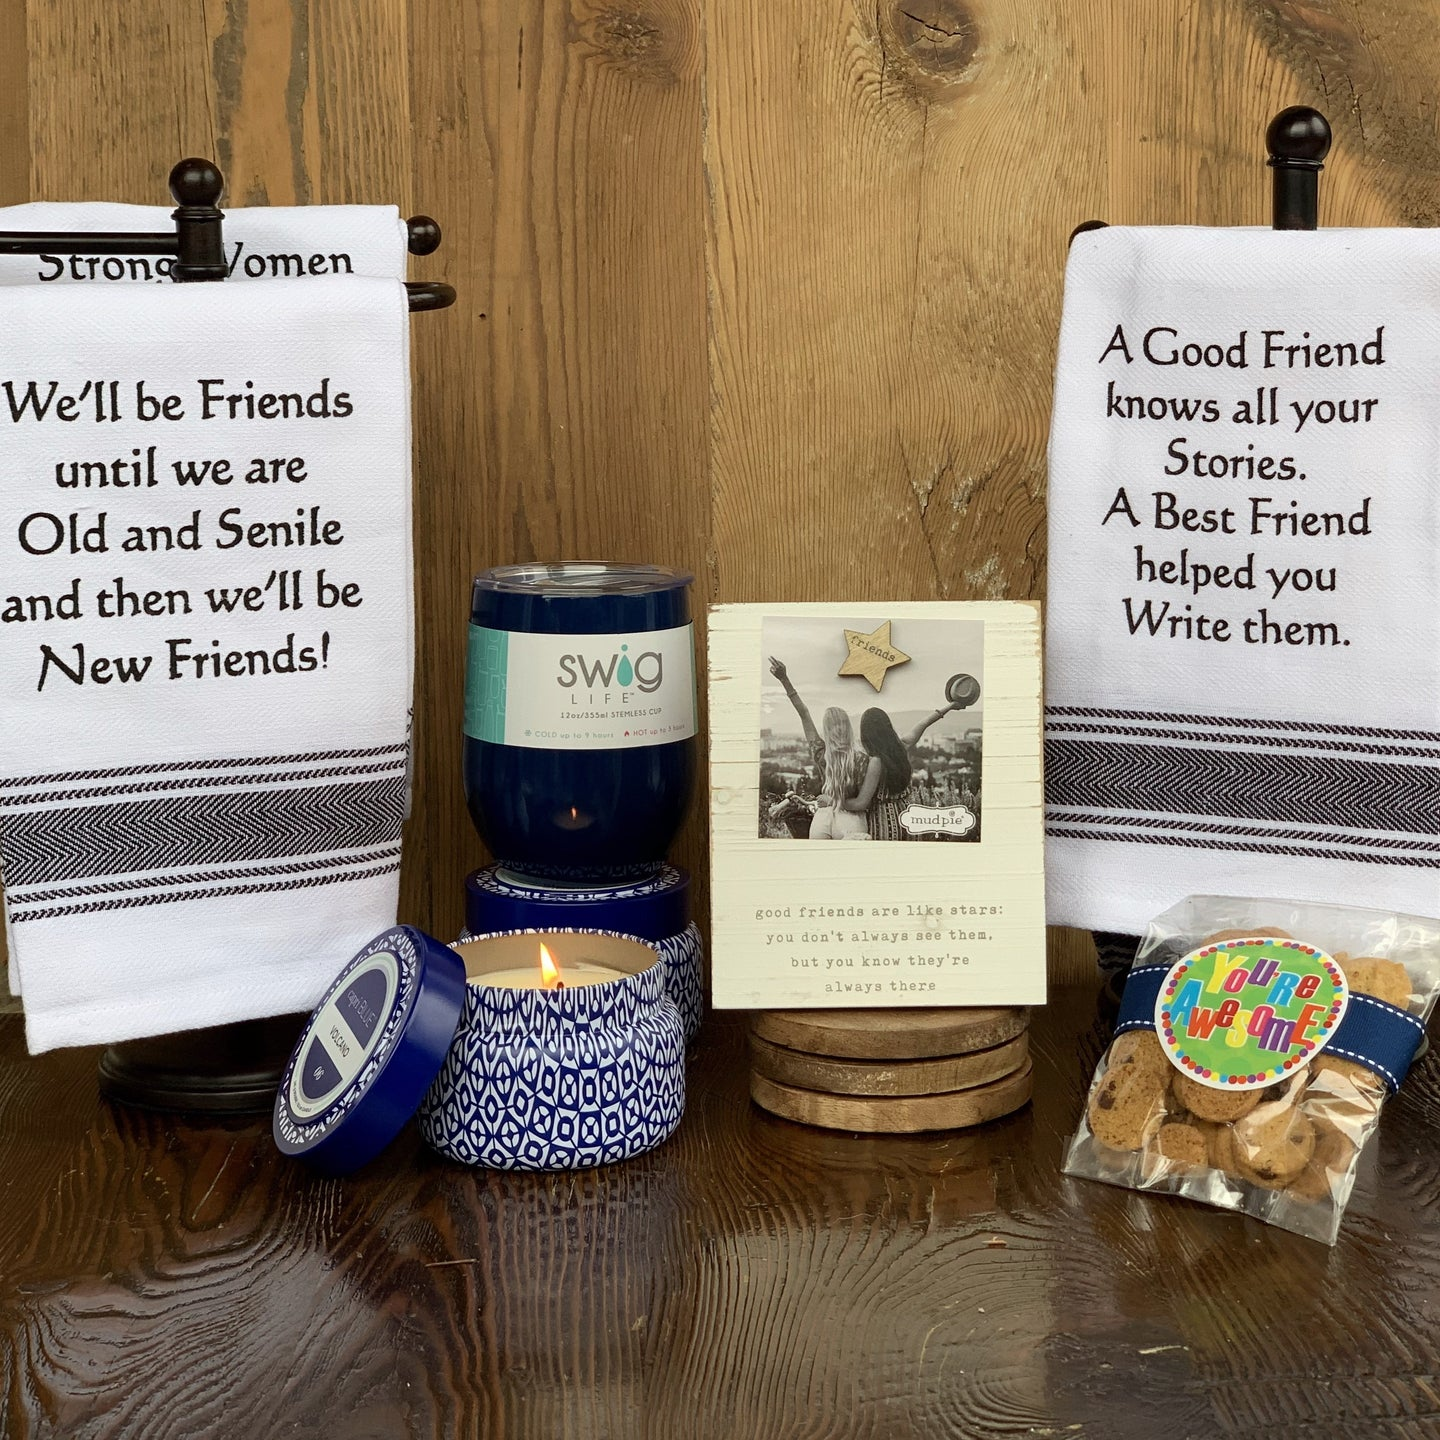 We'll Be Friends Until We Are Old & Senile towel (Choose Preferred Saying) Capri Blue Volcano Candle 8.5 oz Navy Blue Swig Wine Cup Mud Pie Friends Are Like Stars Frame Oh Sugar Cookies 2.5 oz